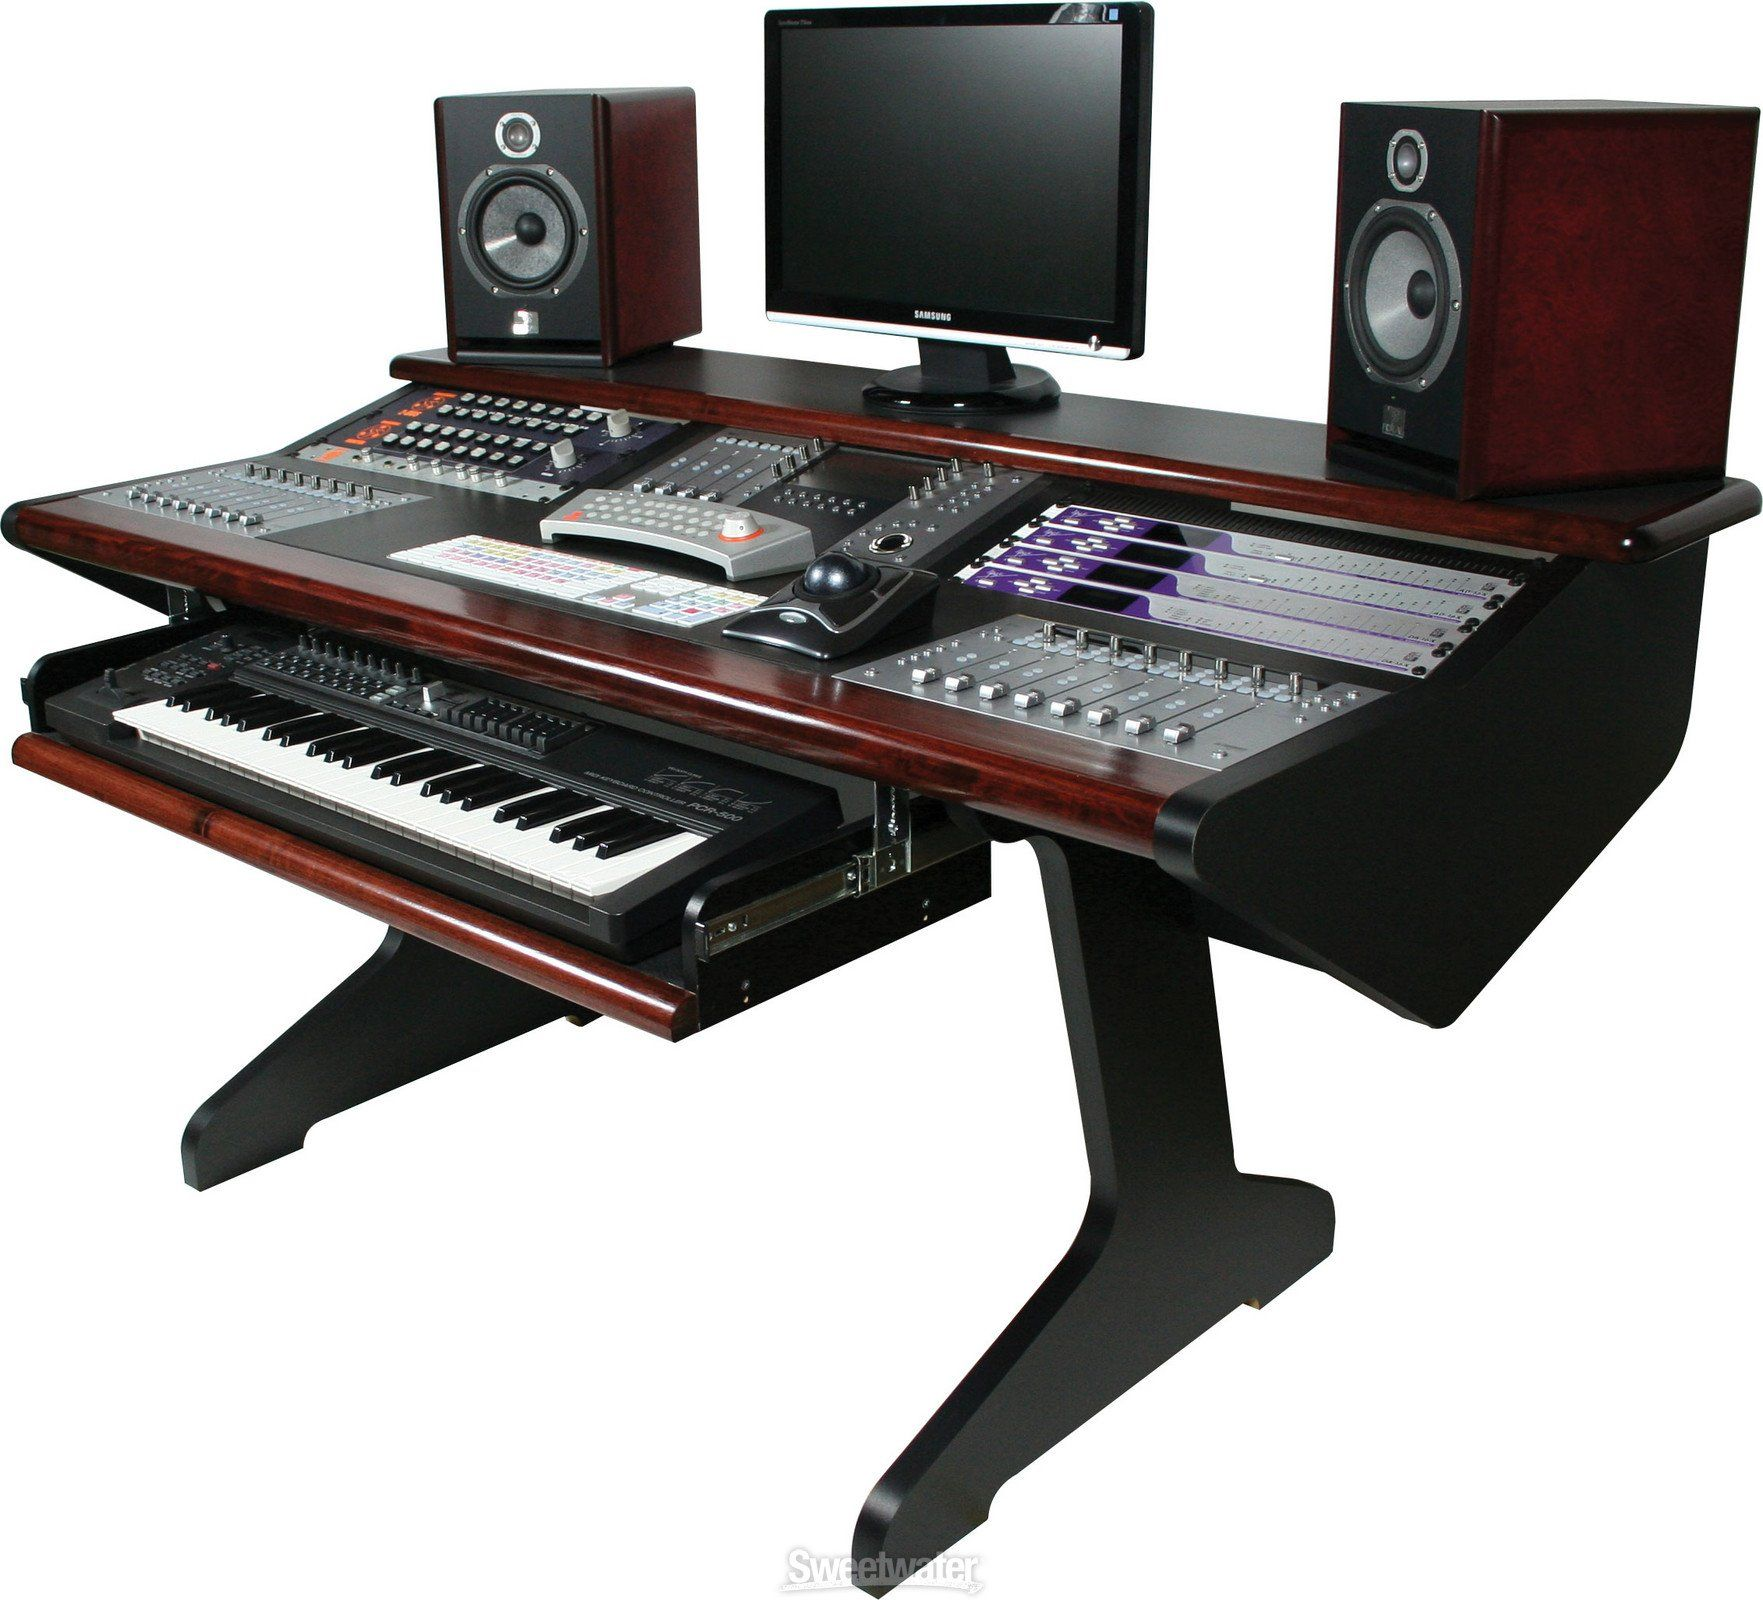 Steven Slate Audio Raven Mti Core Station With 2 Raven Mti2s Music Studio Room Recording Studio Design Studio Desk